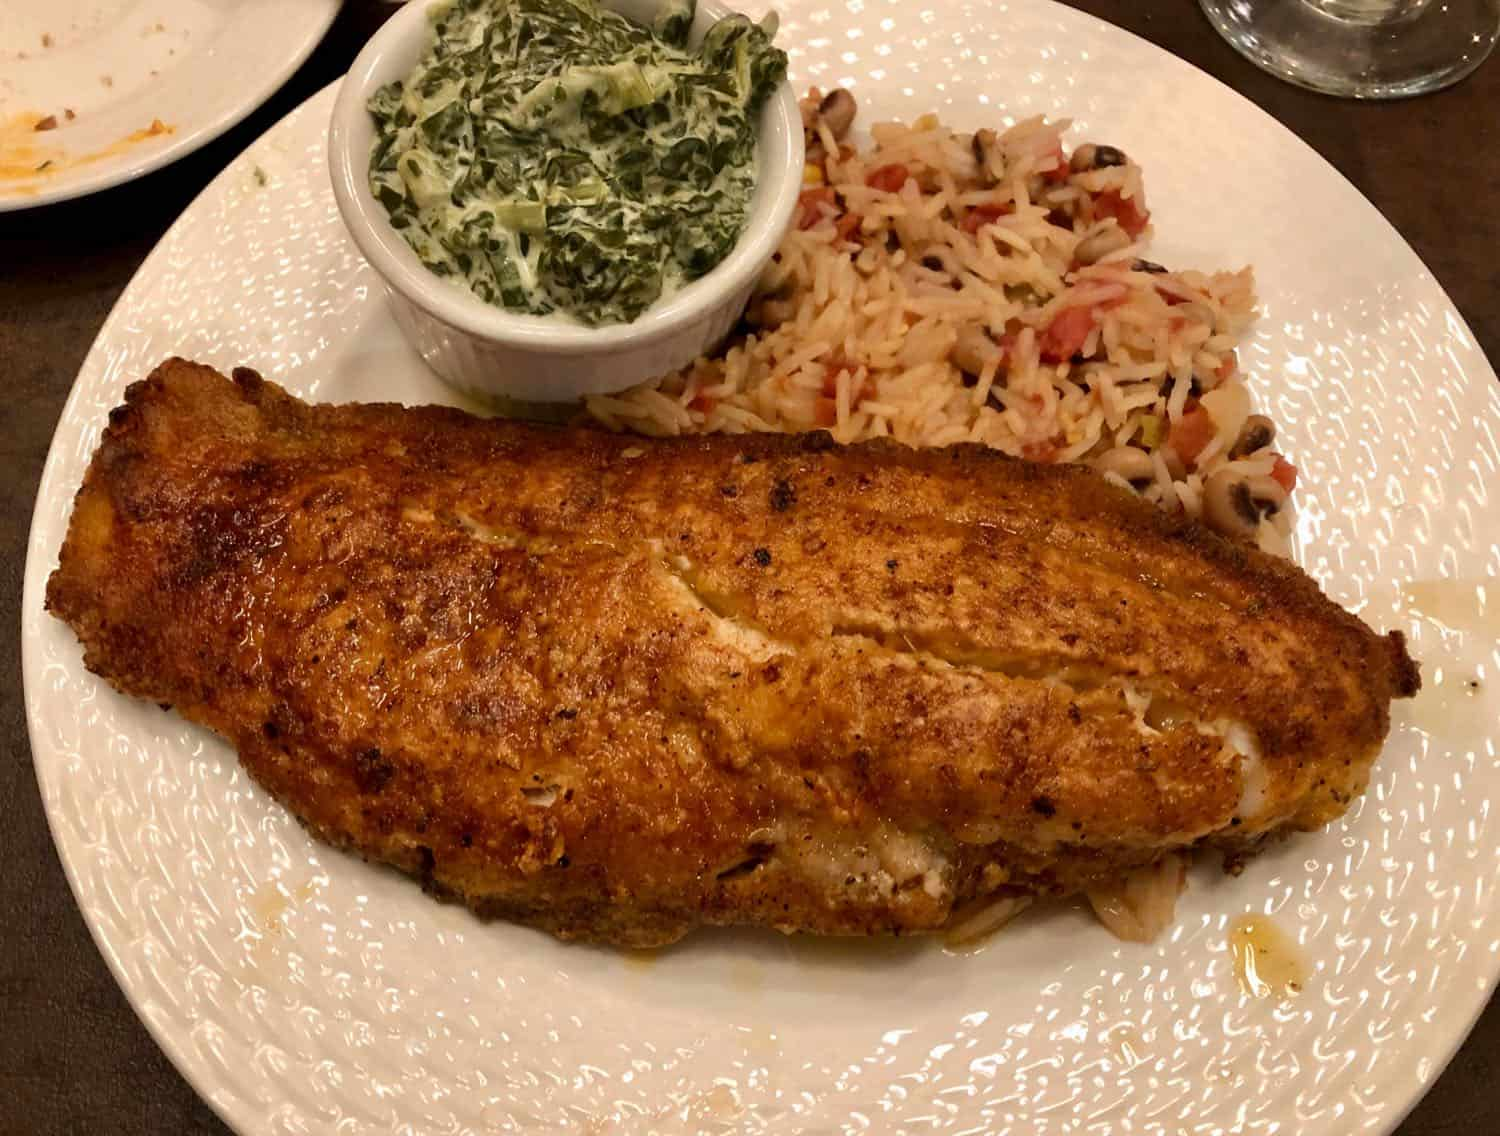 catfish, rice and creamed spinach on a white plate at Cafe Anchuca